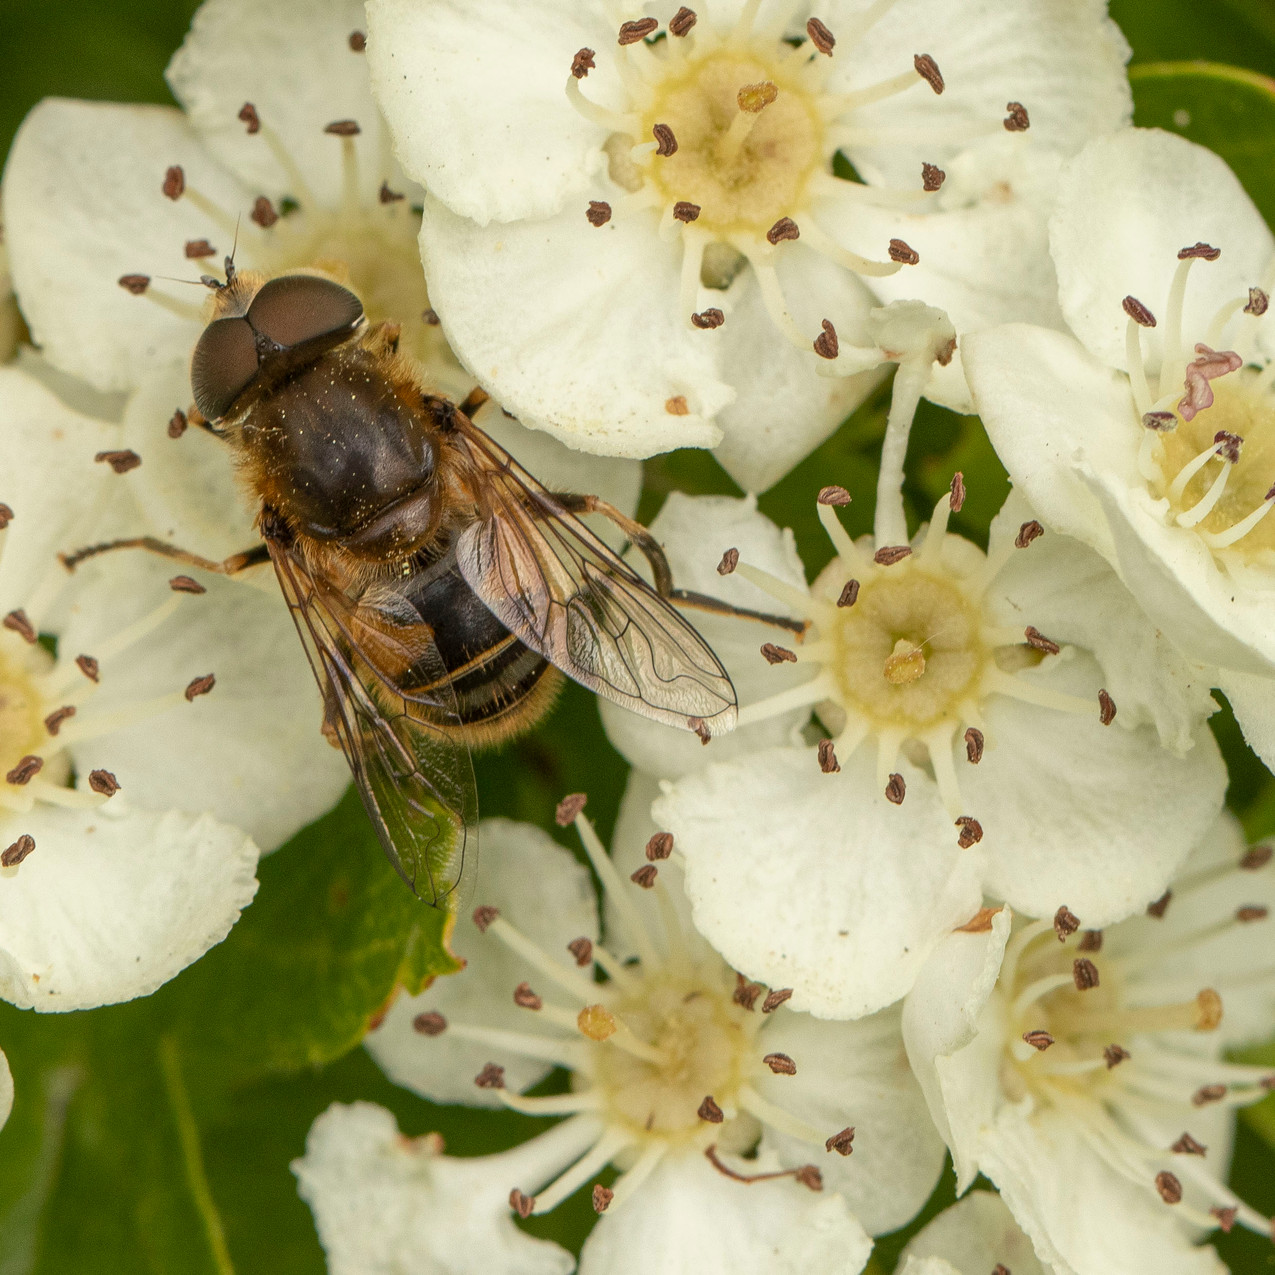 13th May 2020 _Hoverfly _Snakeholme Pits